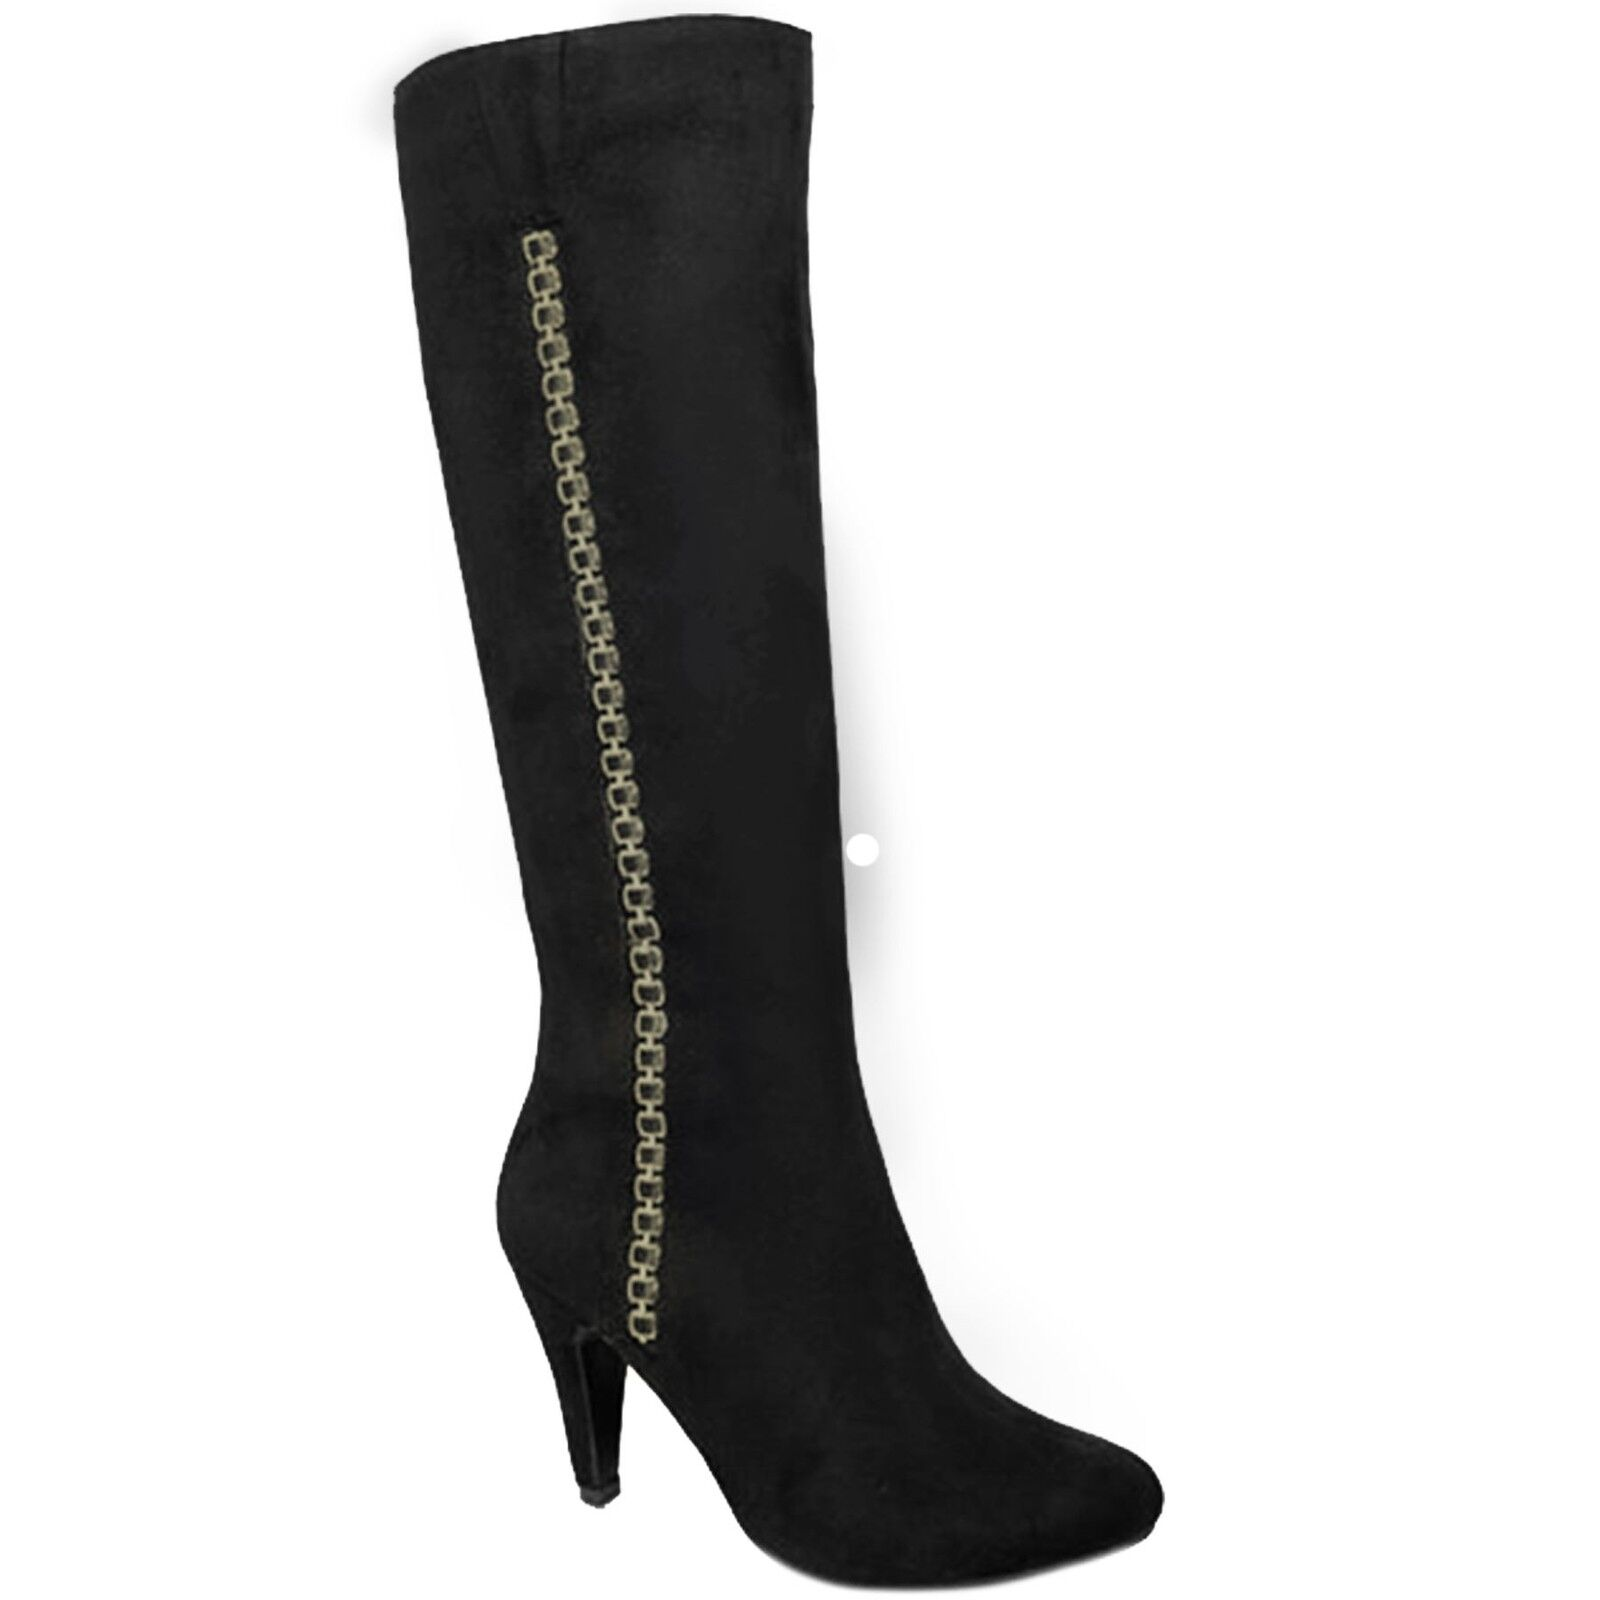 GLC565 Hadley Faux Suede Side Zip Pointed Toe Chain Calf High Heeled Stiefel